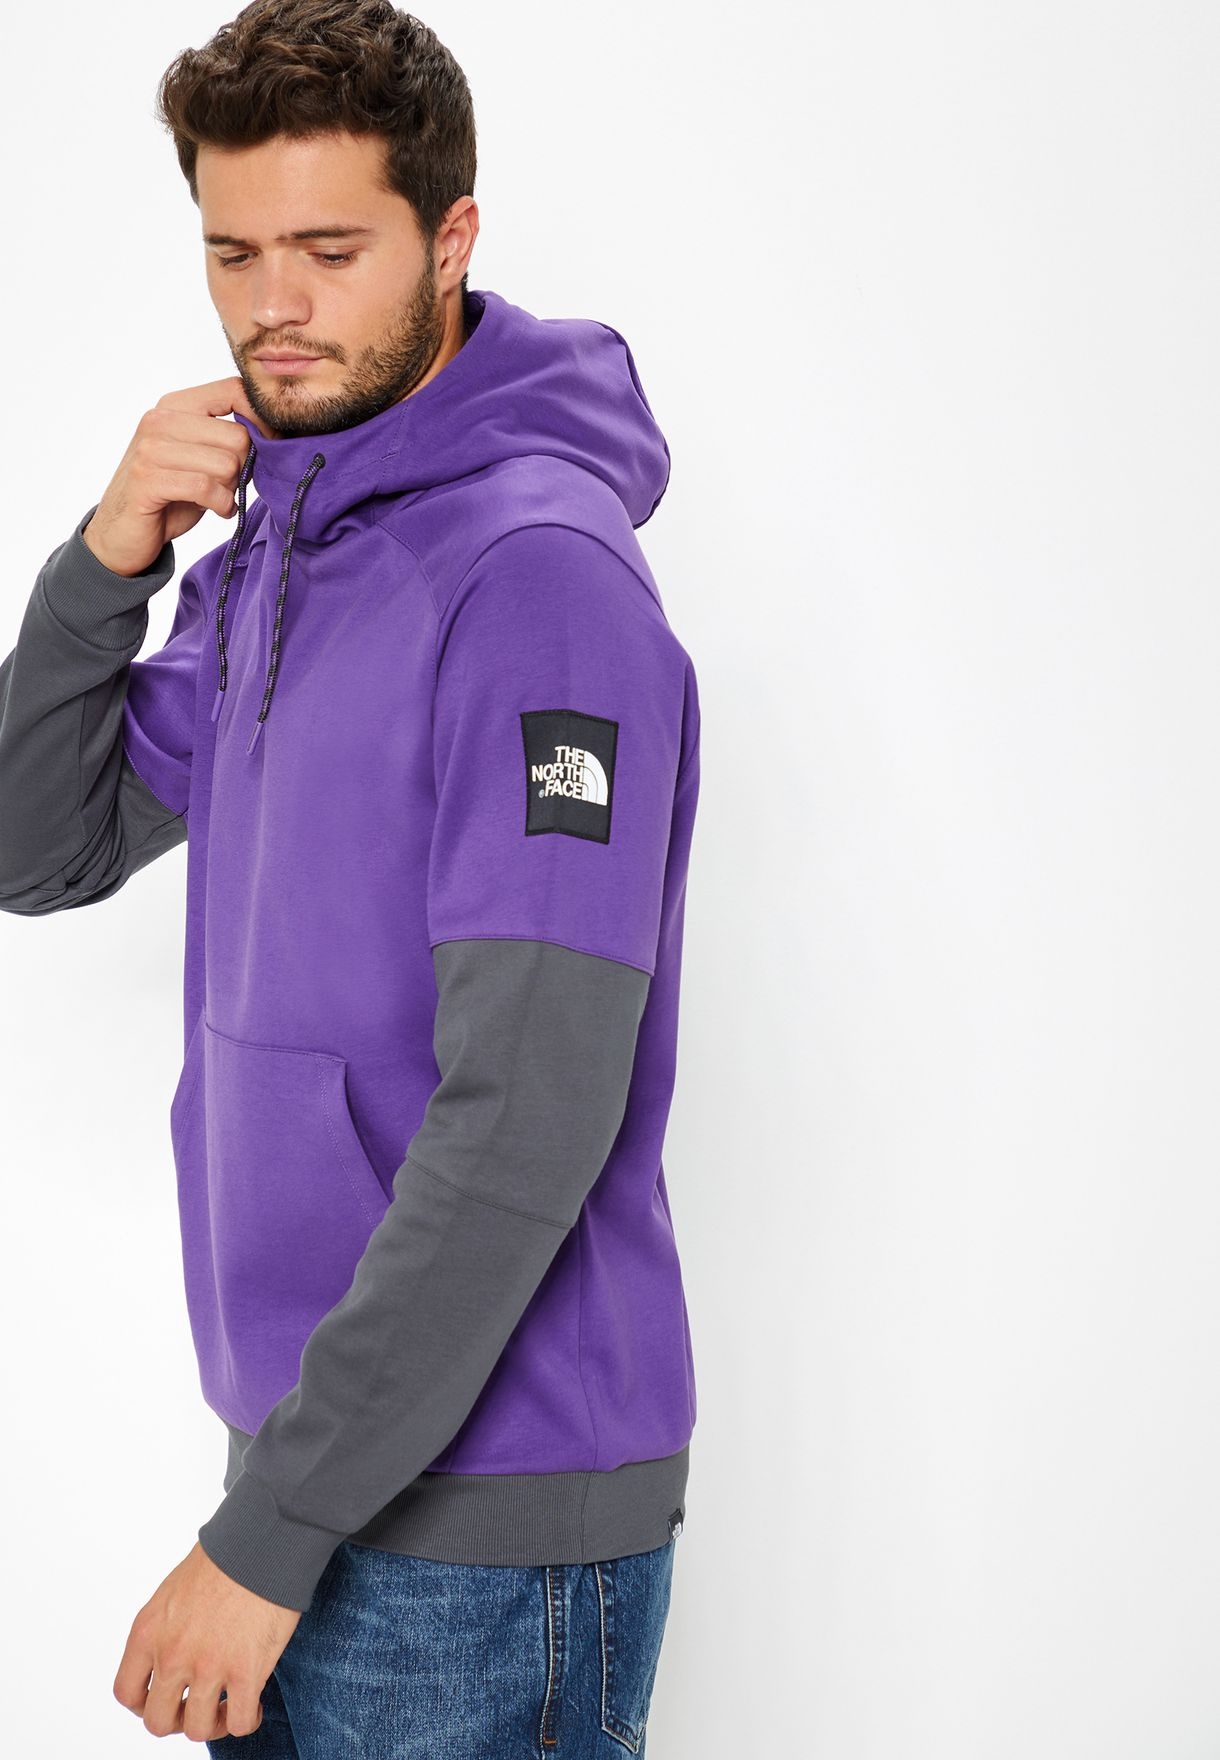 d324fc6a813 Shop The North Face purple Fine 2 Box Hoodie T93BNX-3YR for Men in ...